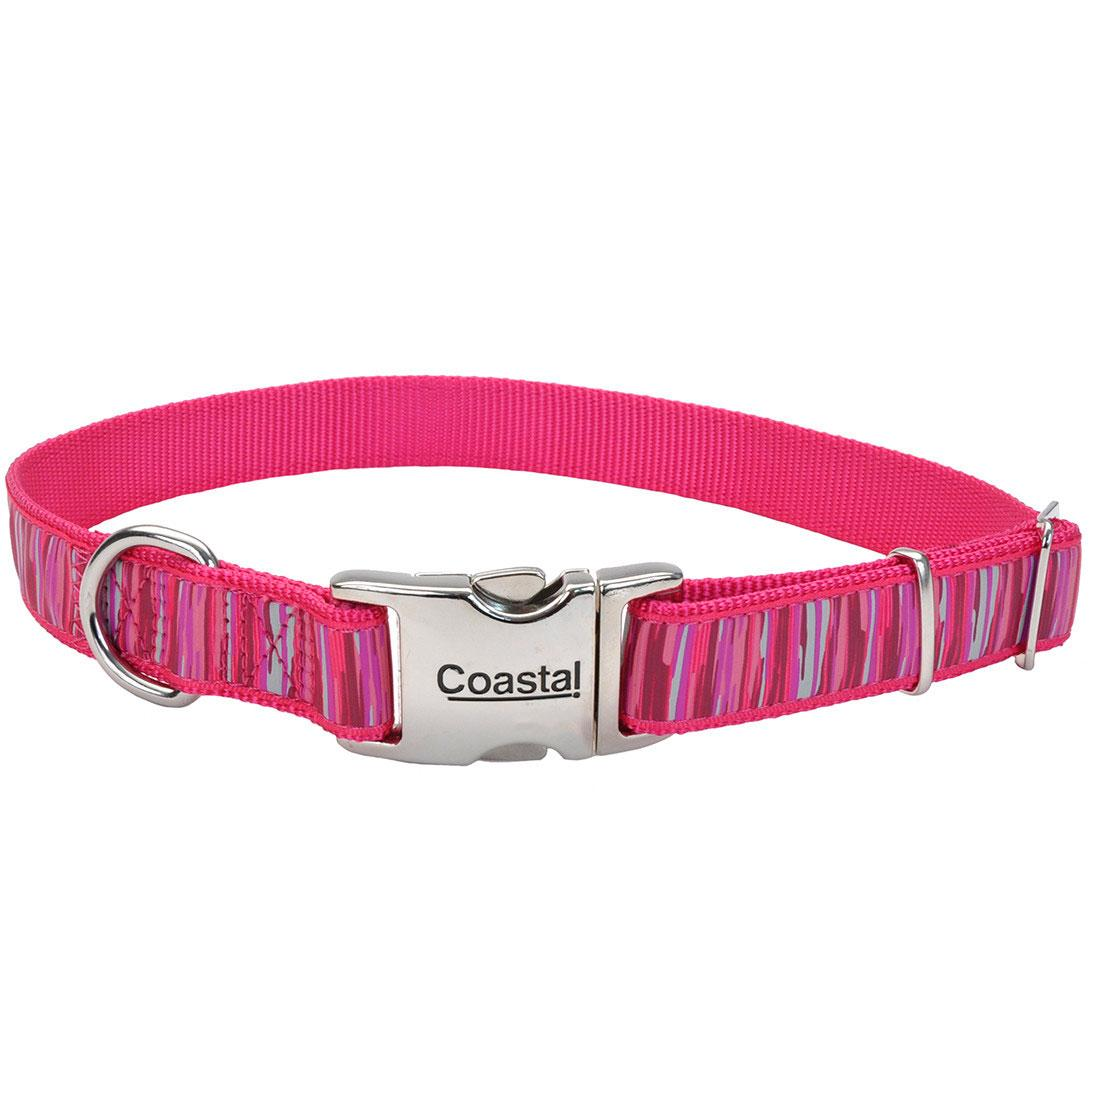 Ribbon Adjustable Collar with Metal Buckle for Dogs, Pink Flamingo Stripe, 5/8-in x 8-12-in